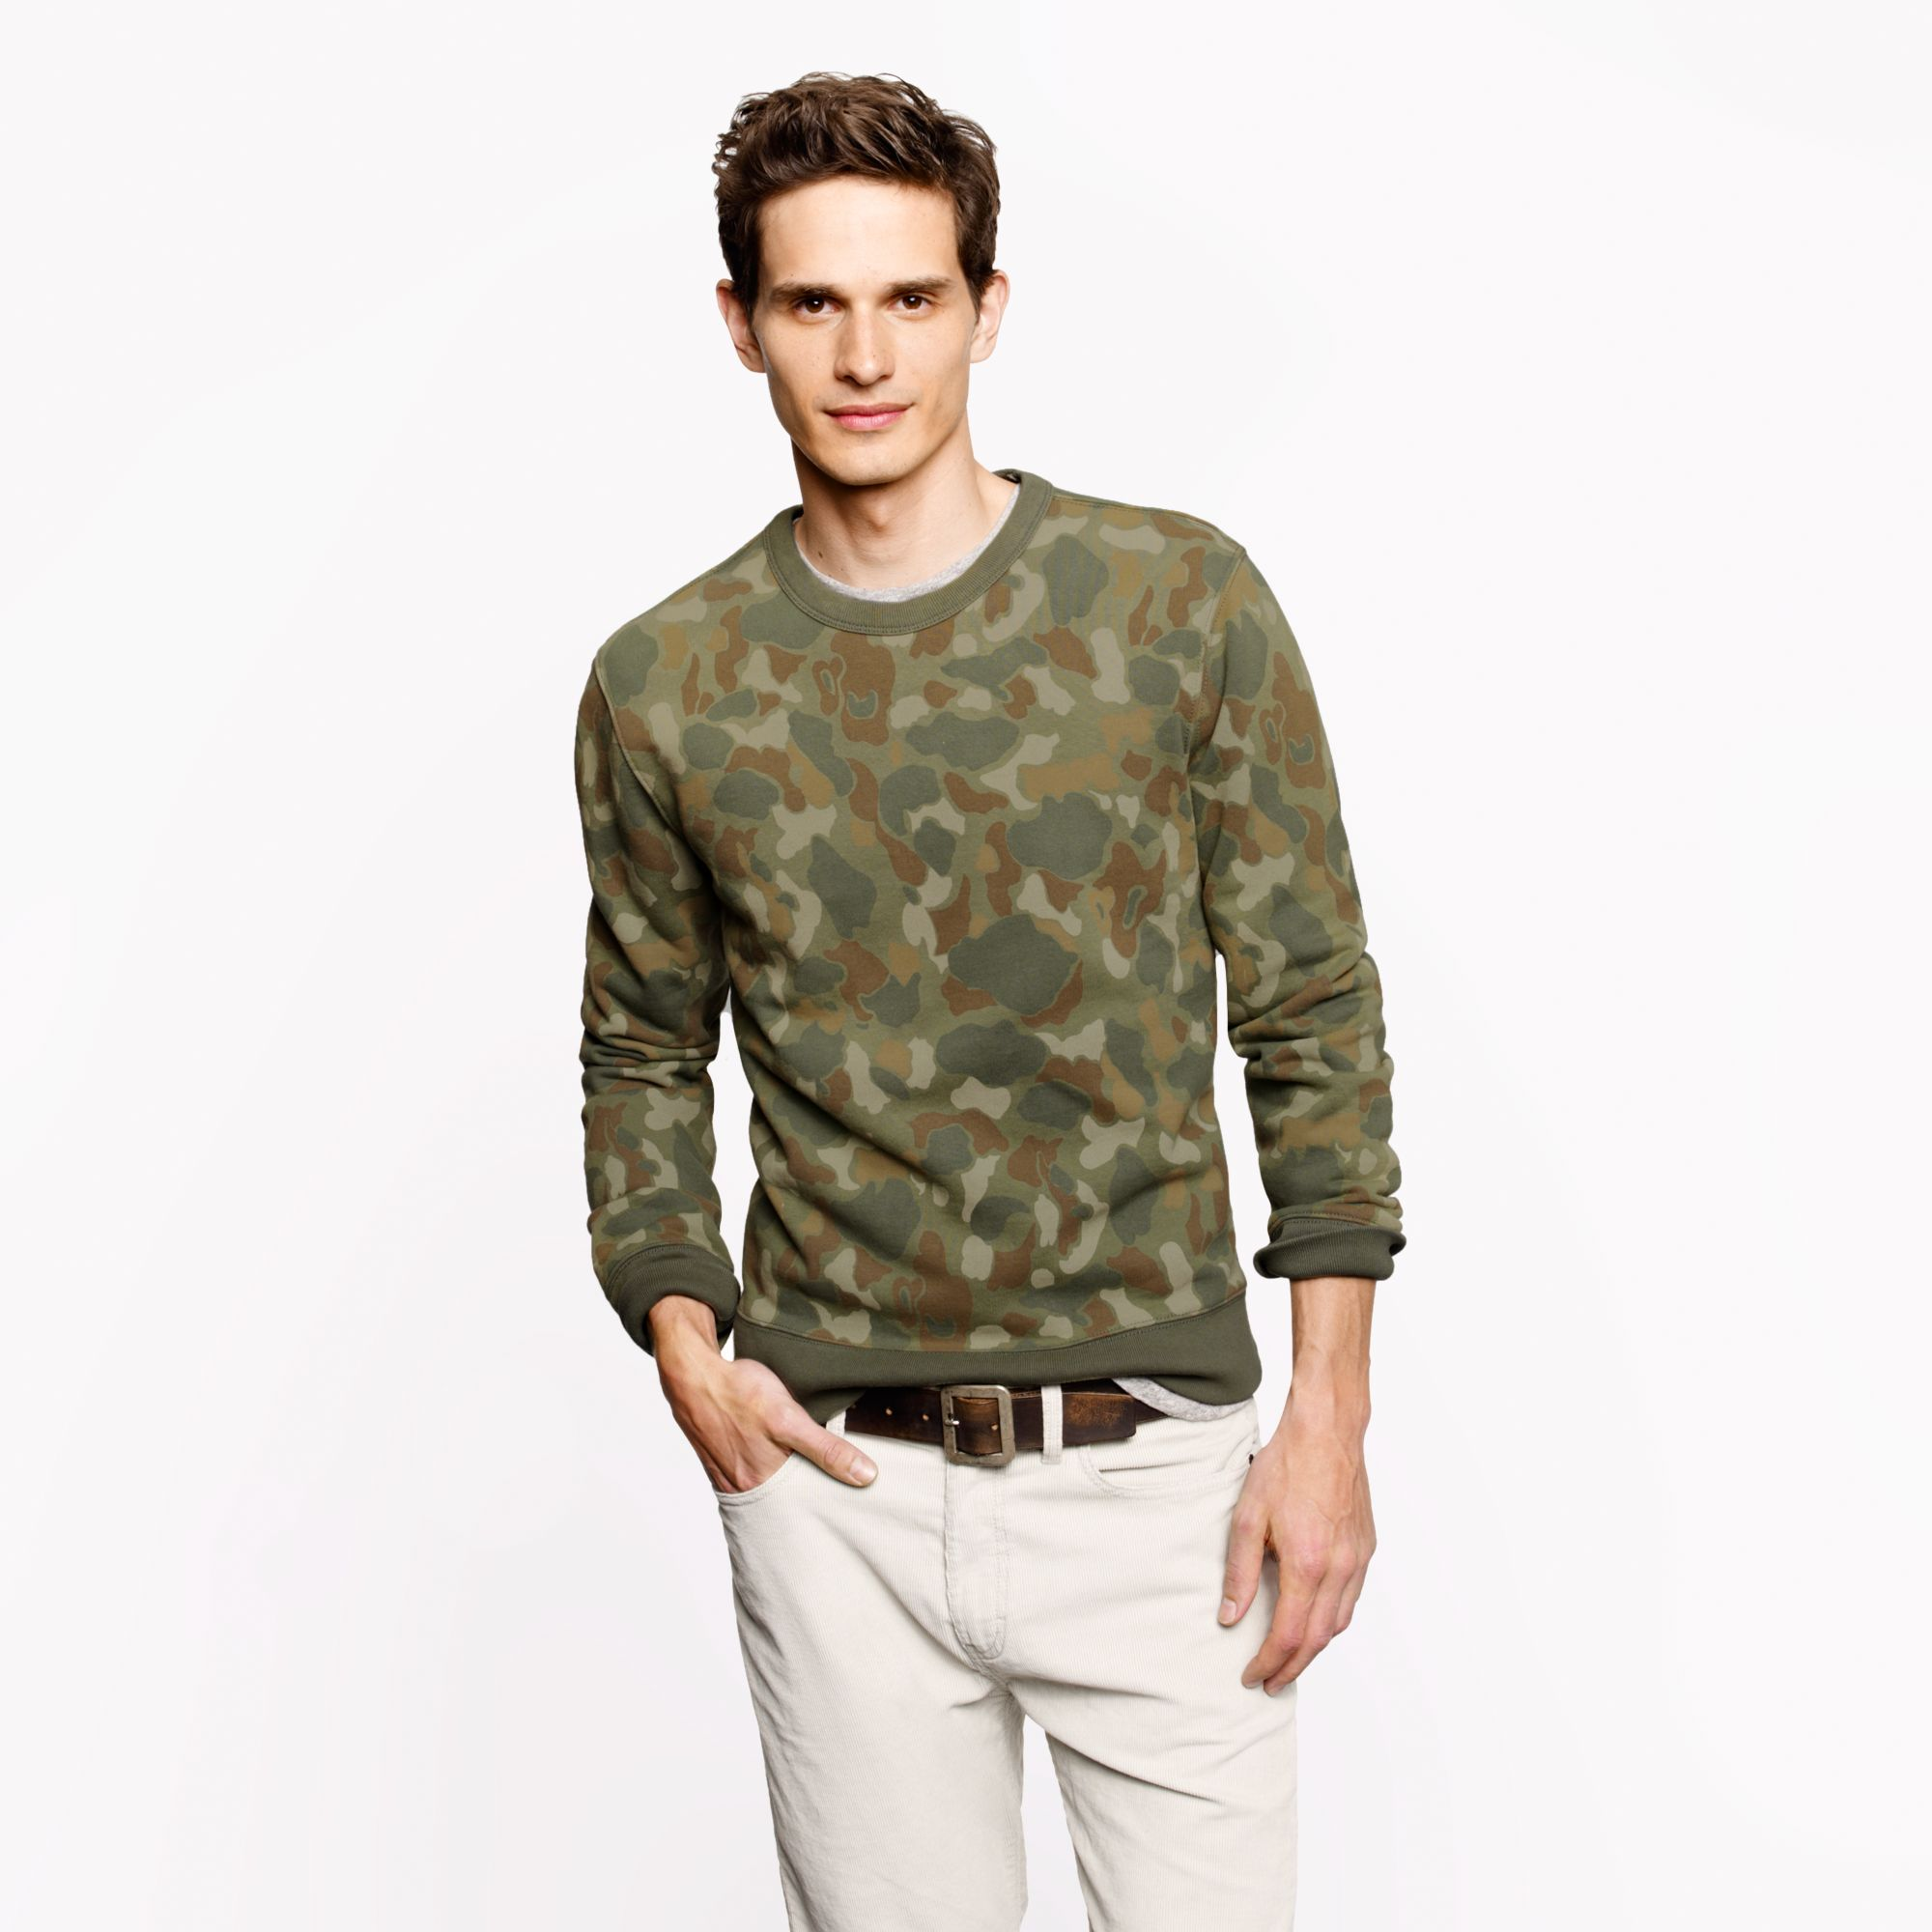 J Crew Wallace Barnes Camo Sweatshirt In Green For Men Lyst